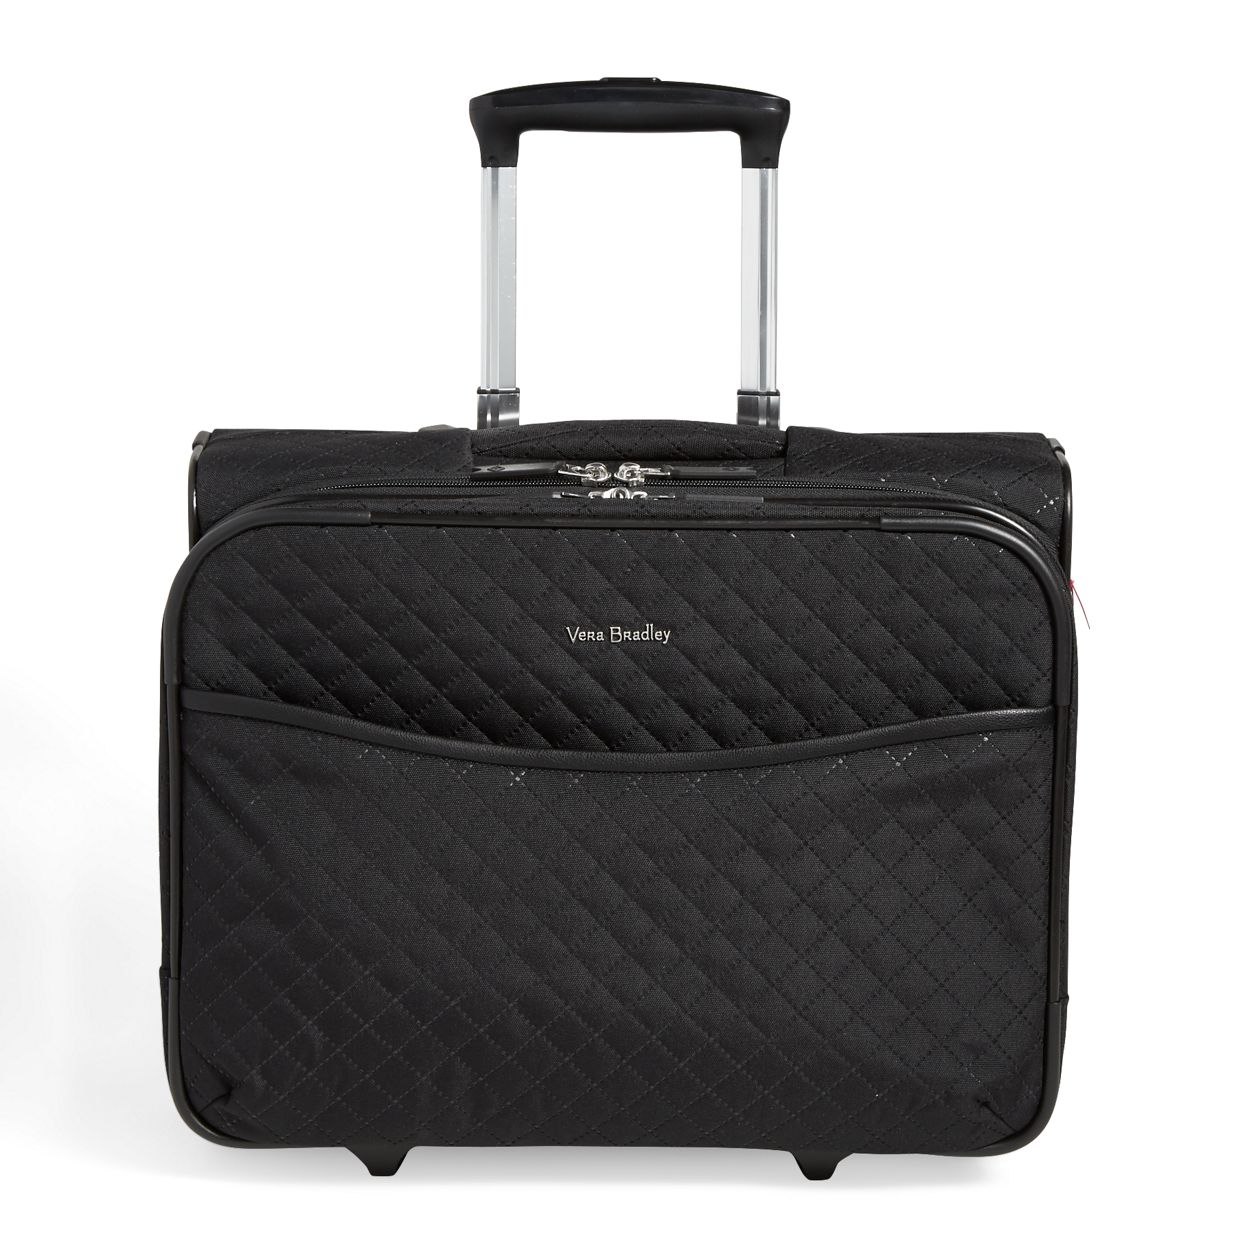 26f0e9243b Image of Iconic Rolling Work Bag in Classic Black ...